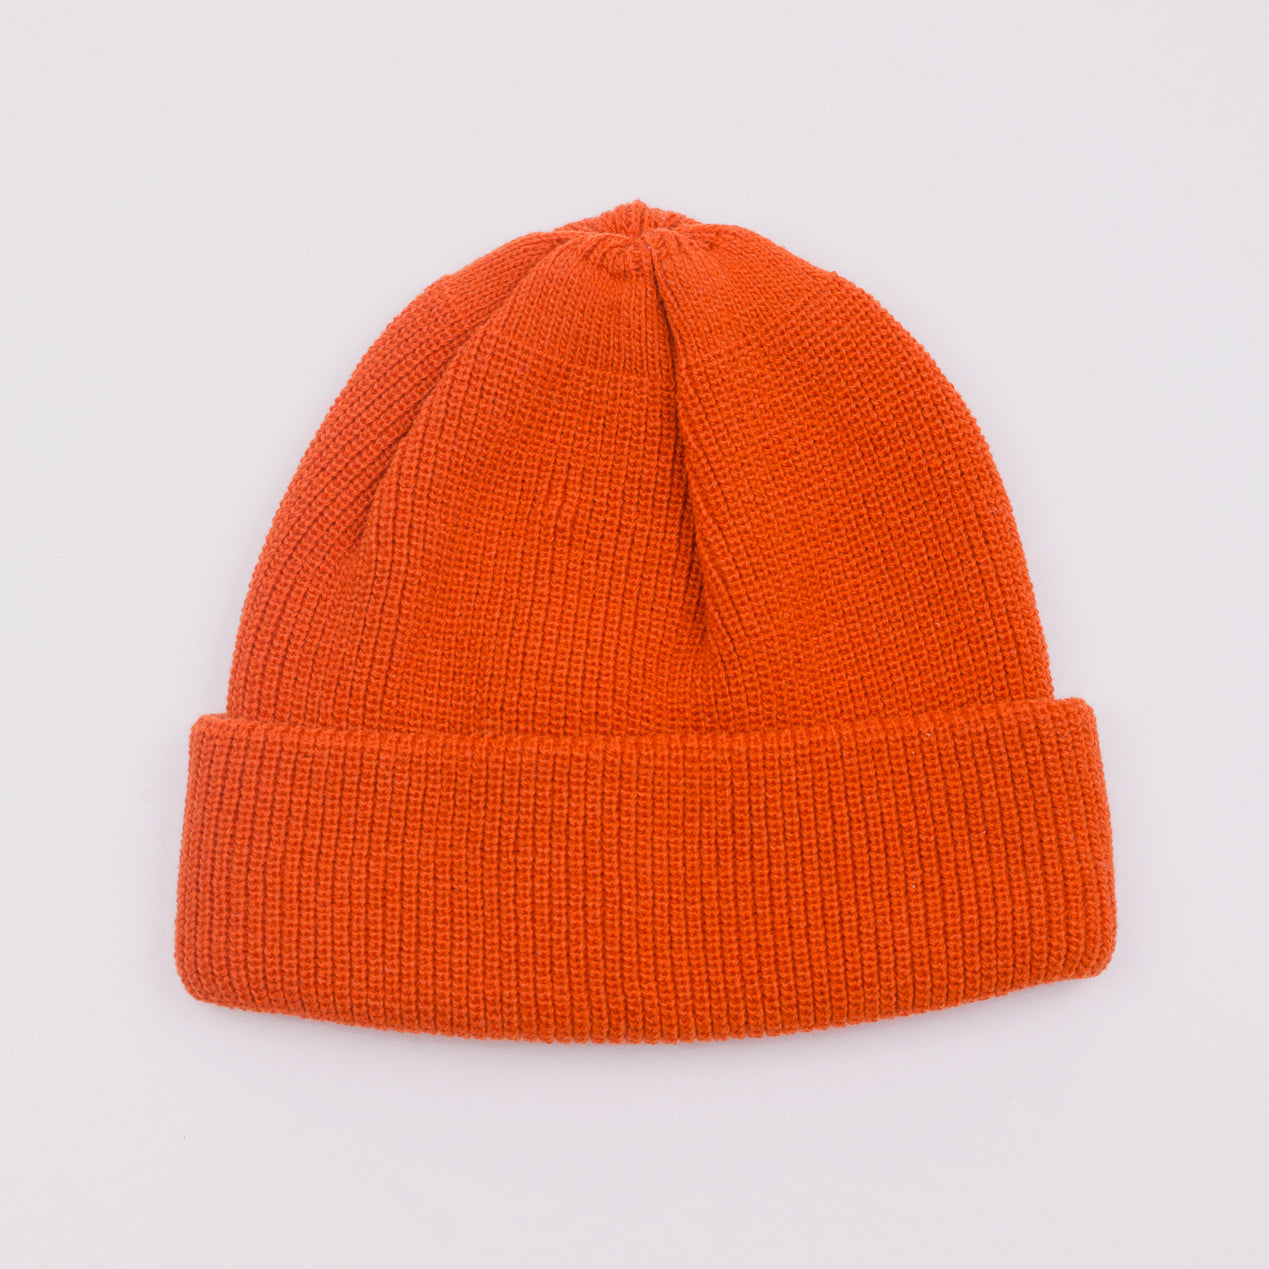 ROTOTO BULKY WATCH CAP - ORANGE